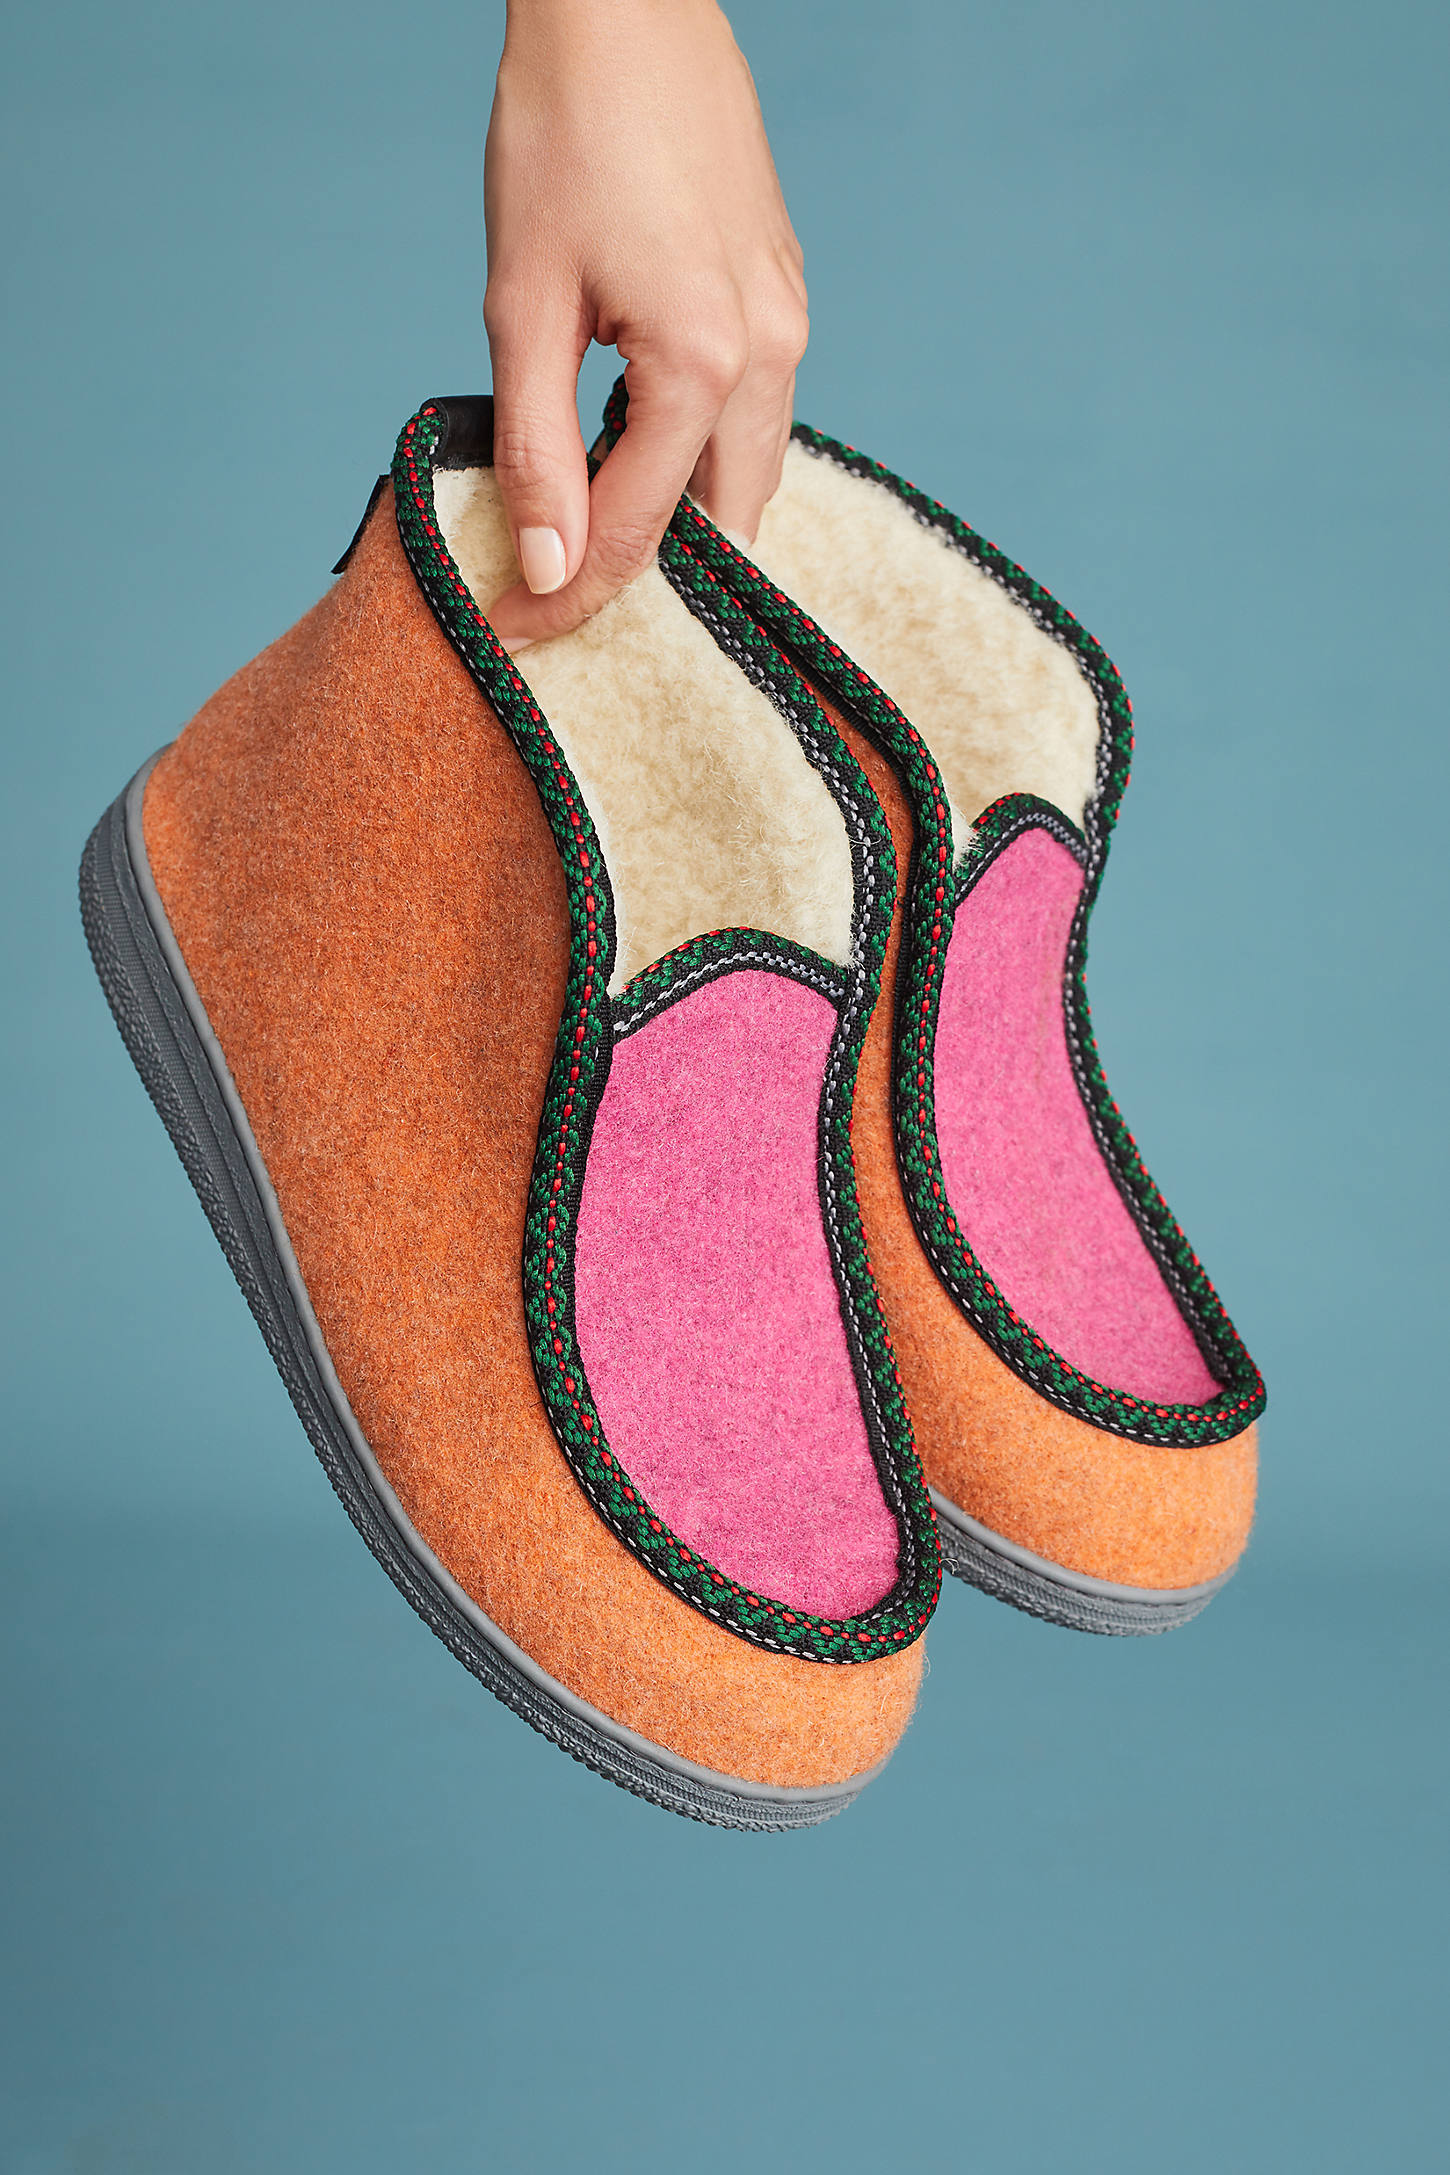 Penelope Chilvers Shearling-Lined Slipper Booties